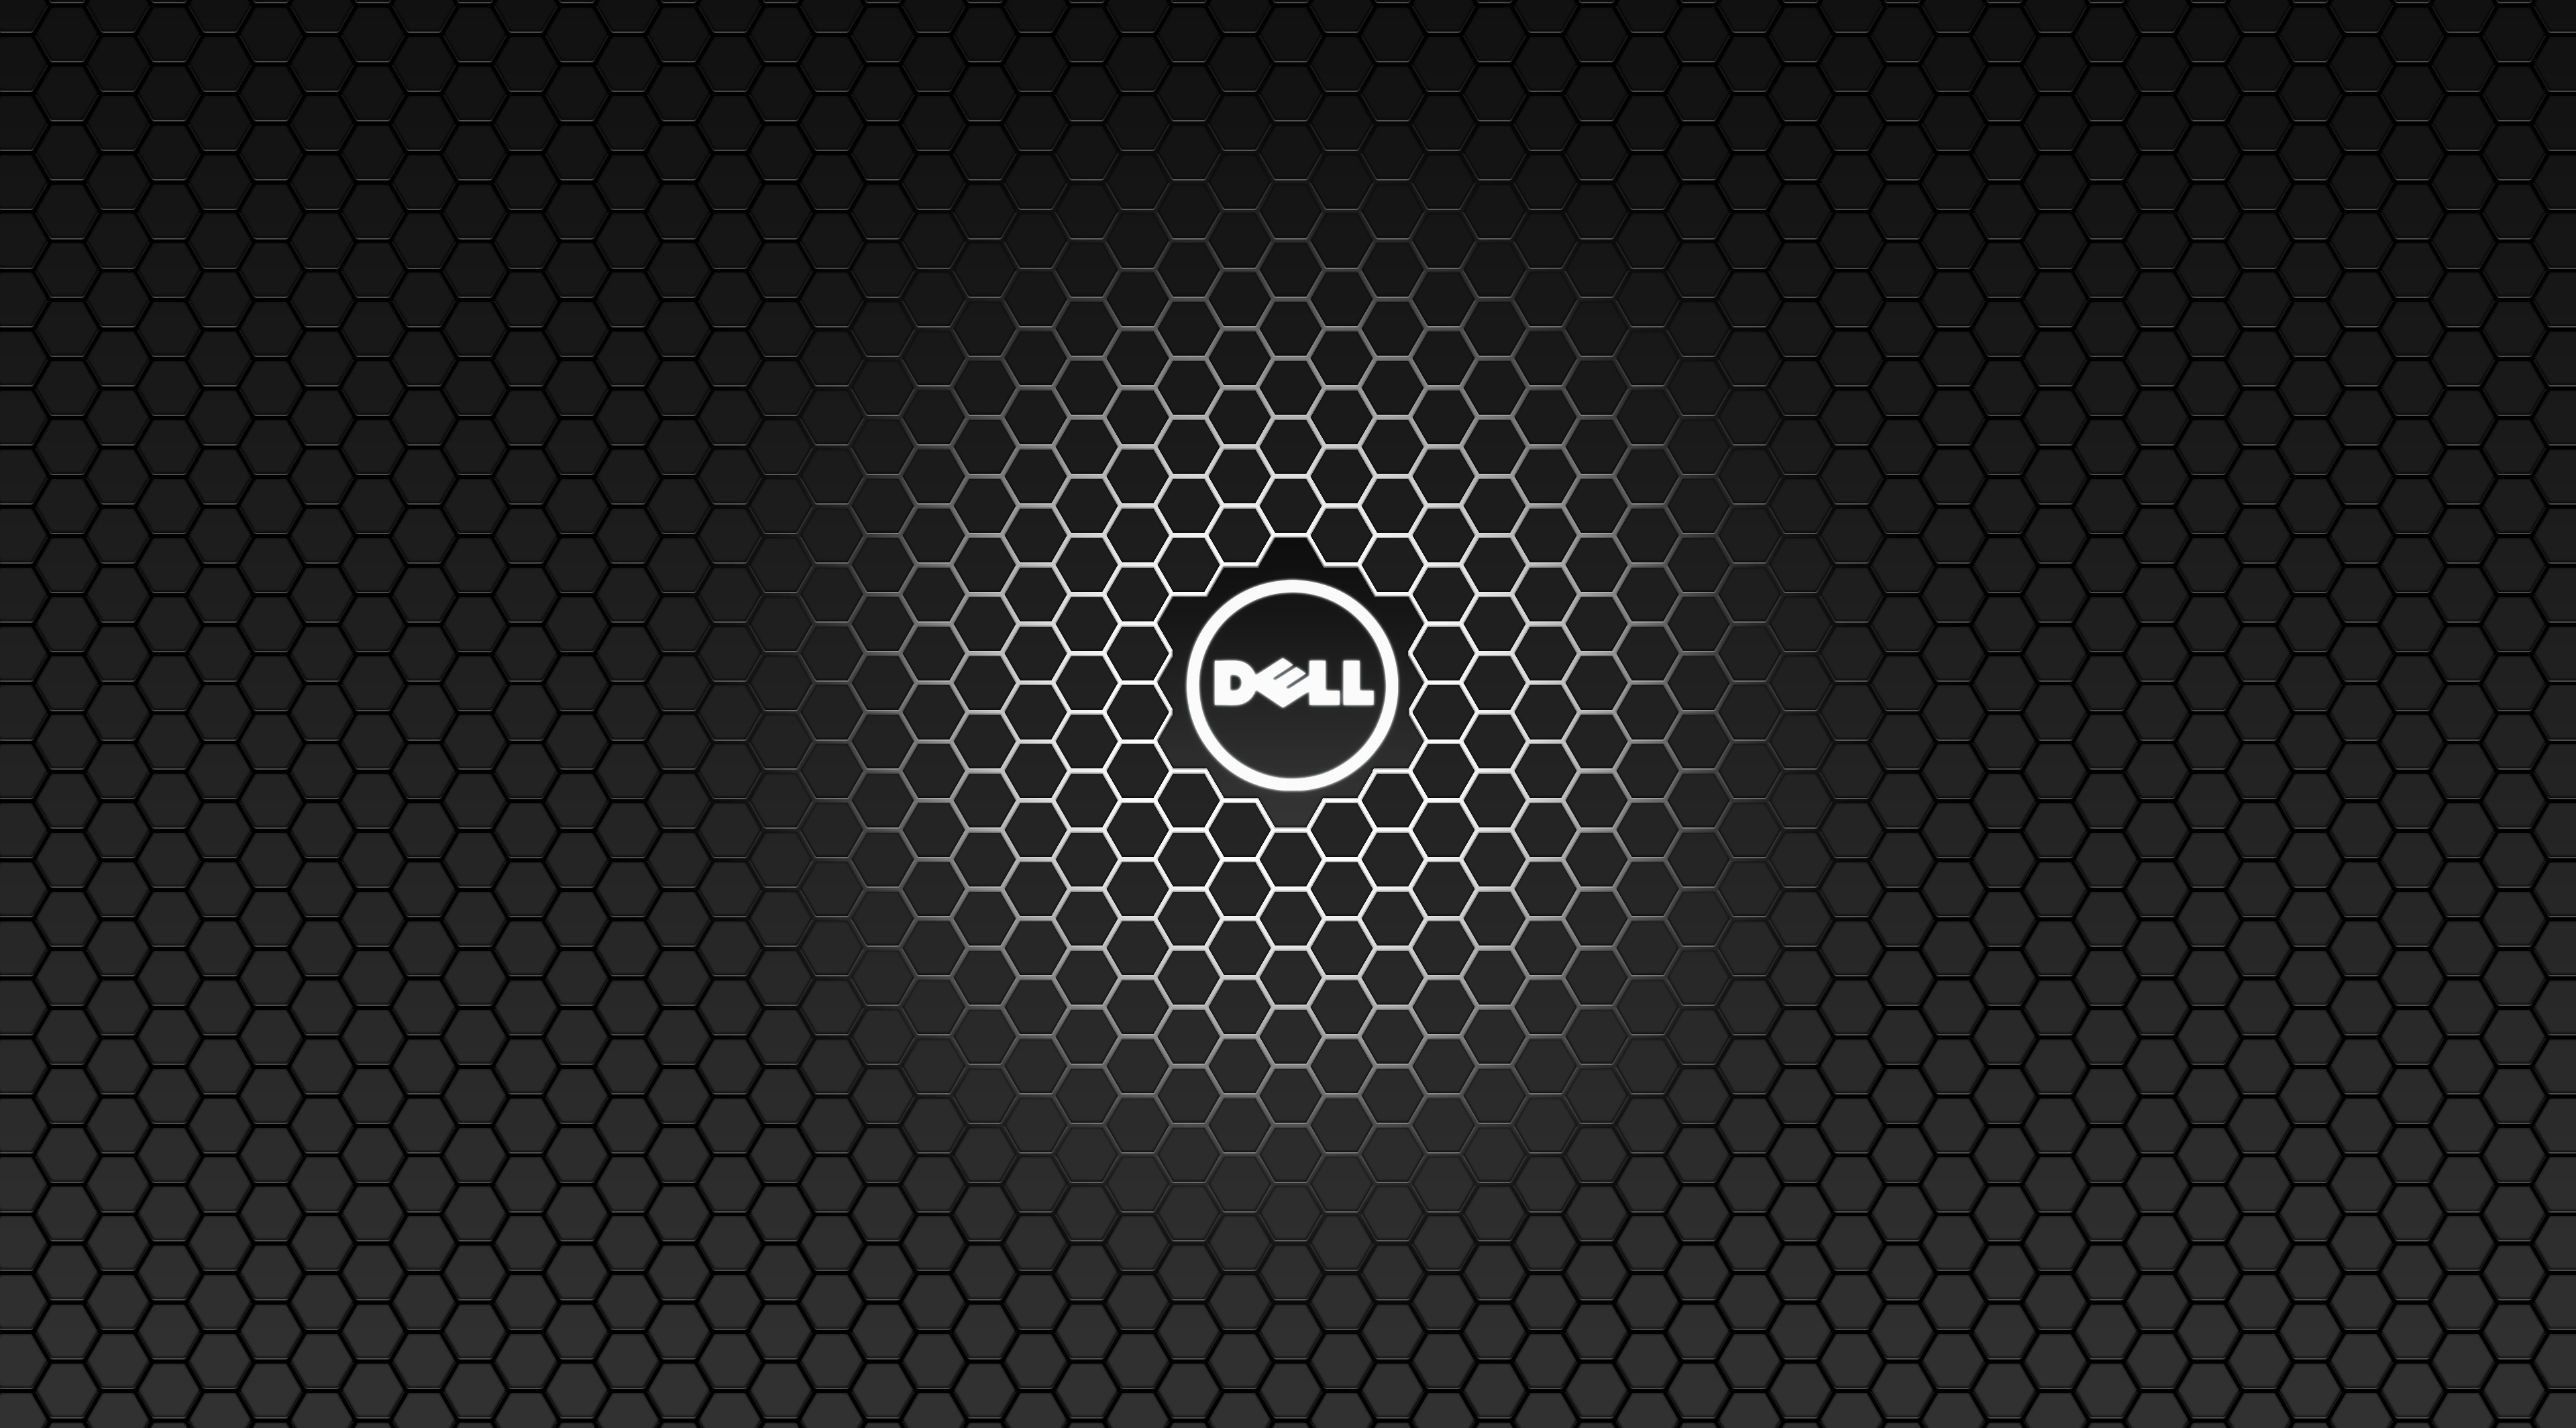 Hd Dell Backgrounds Dell Wallpaper Images For Windows: Dell Desktop Backgrounds Wallpaper